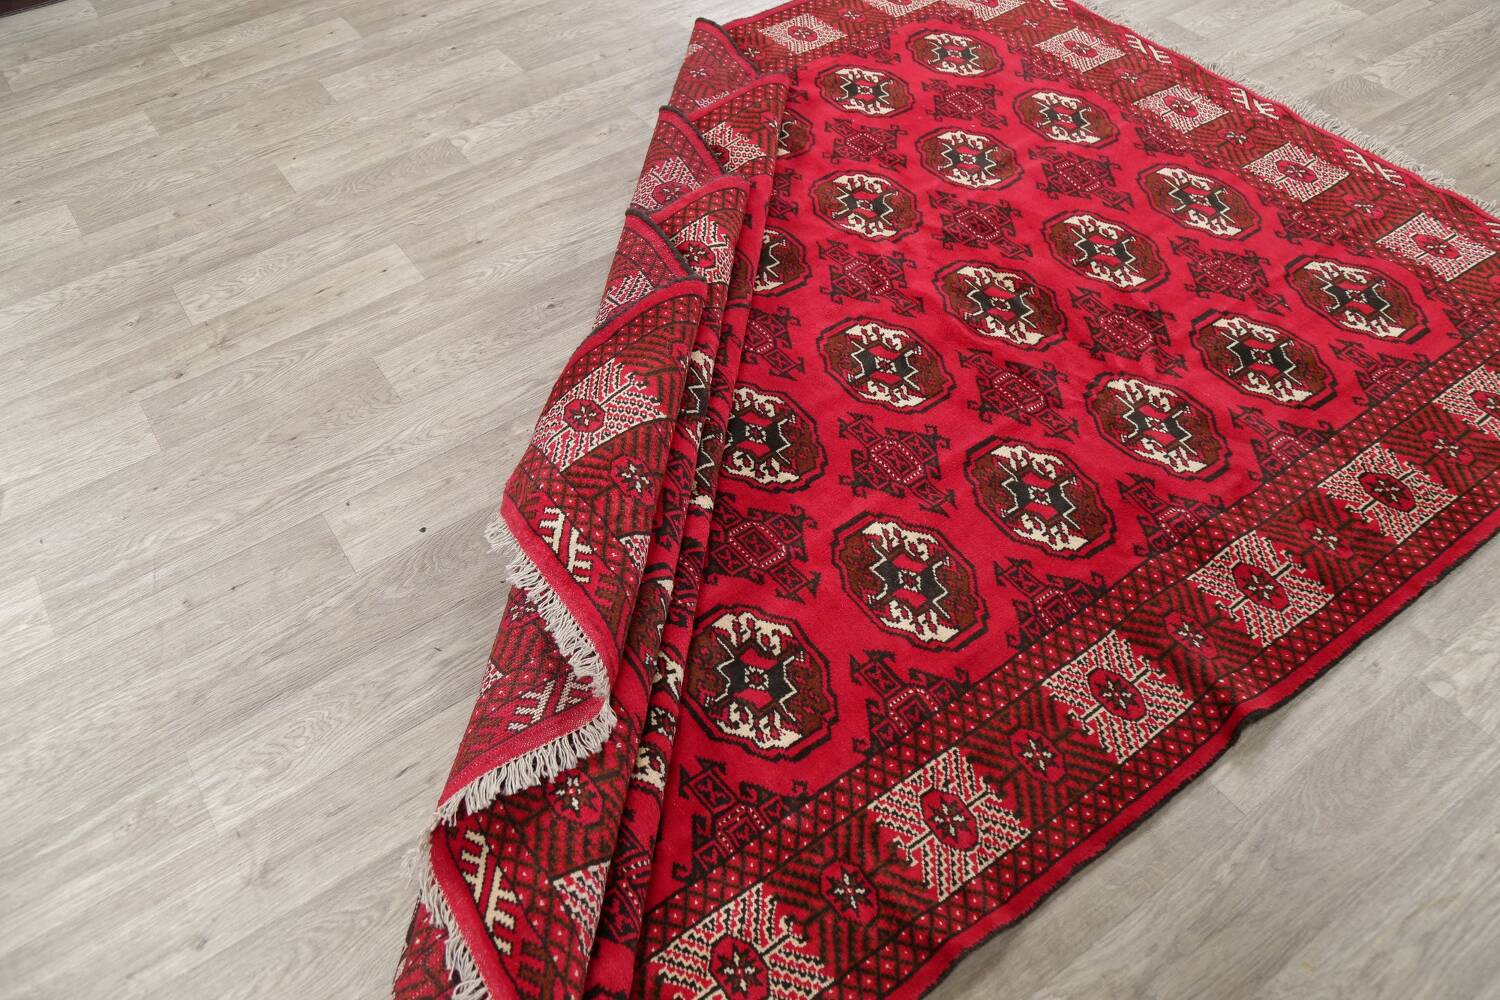 All-Over Geometric Red Balouch Persian Area Rug 6x10 image 15